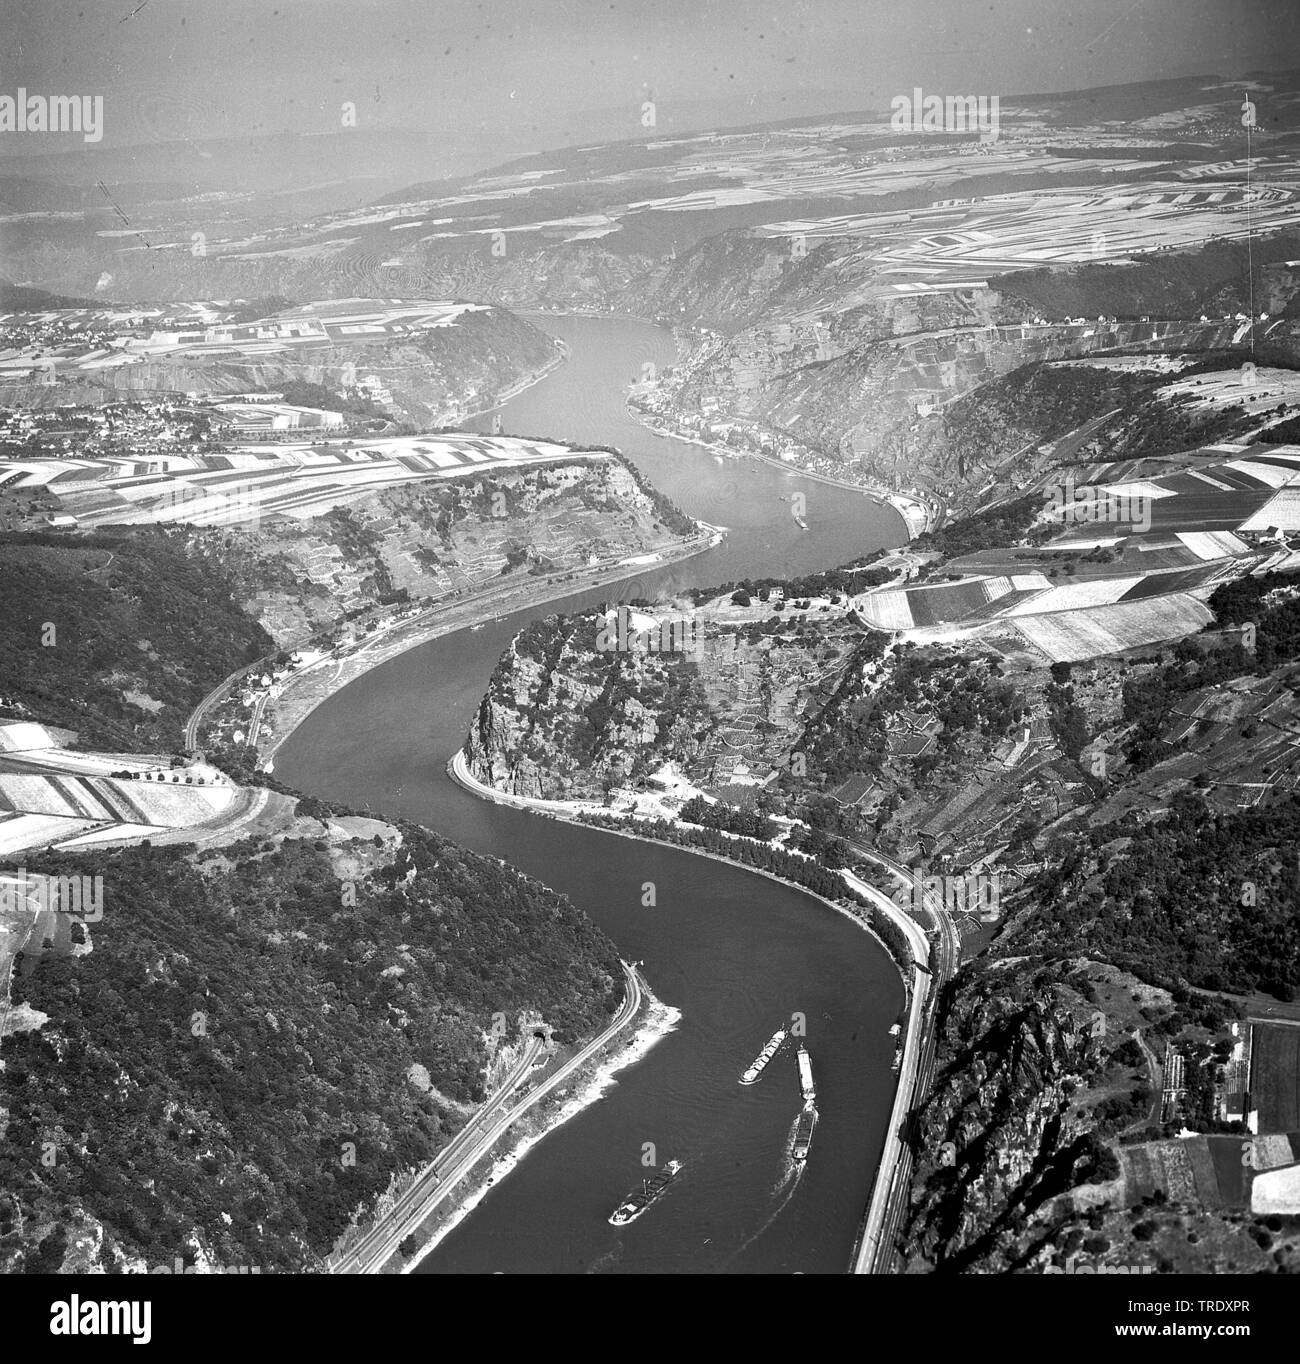 rock Loreley at river Rhine, aerial photo from 29.08.1961, Germany, Rhineland-Palatinate, Sankt Goarshausen Stock Photo